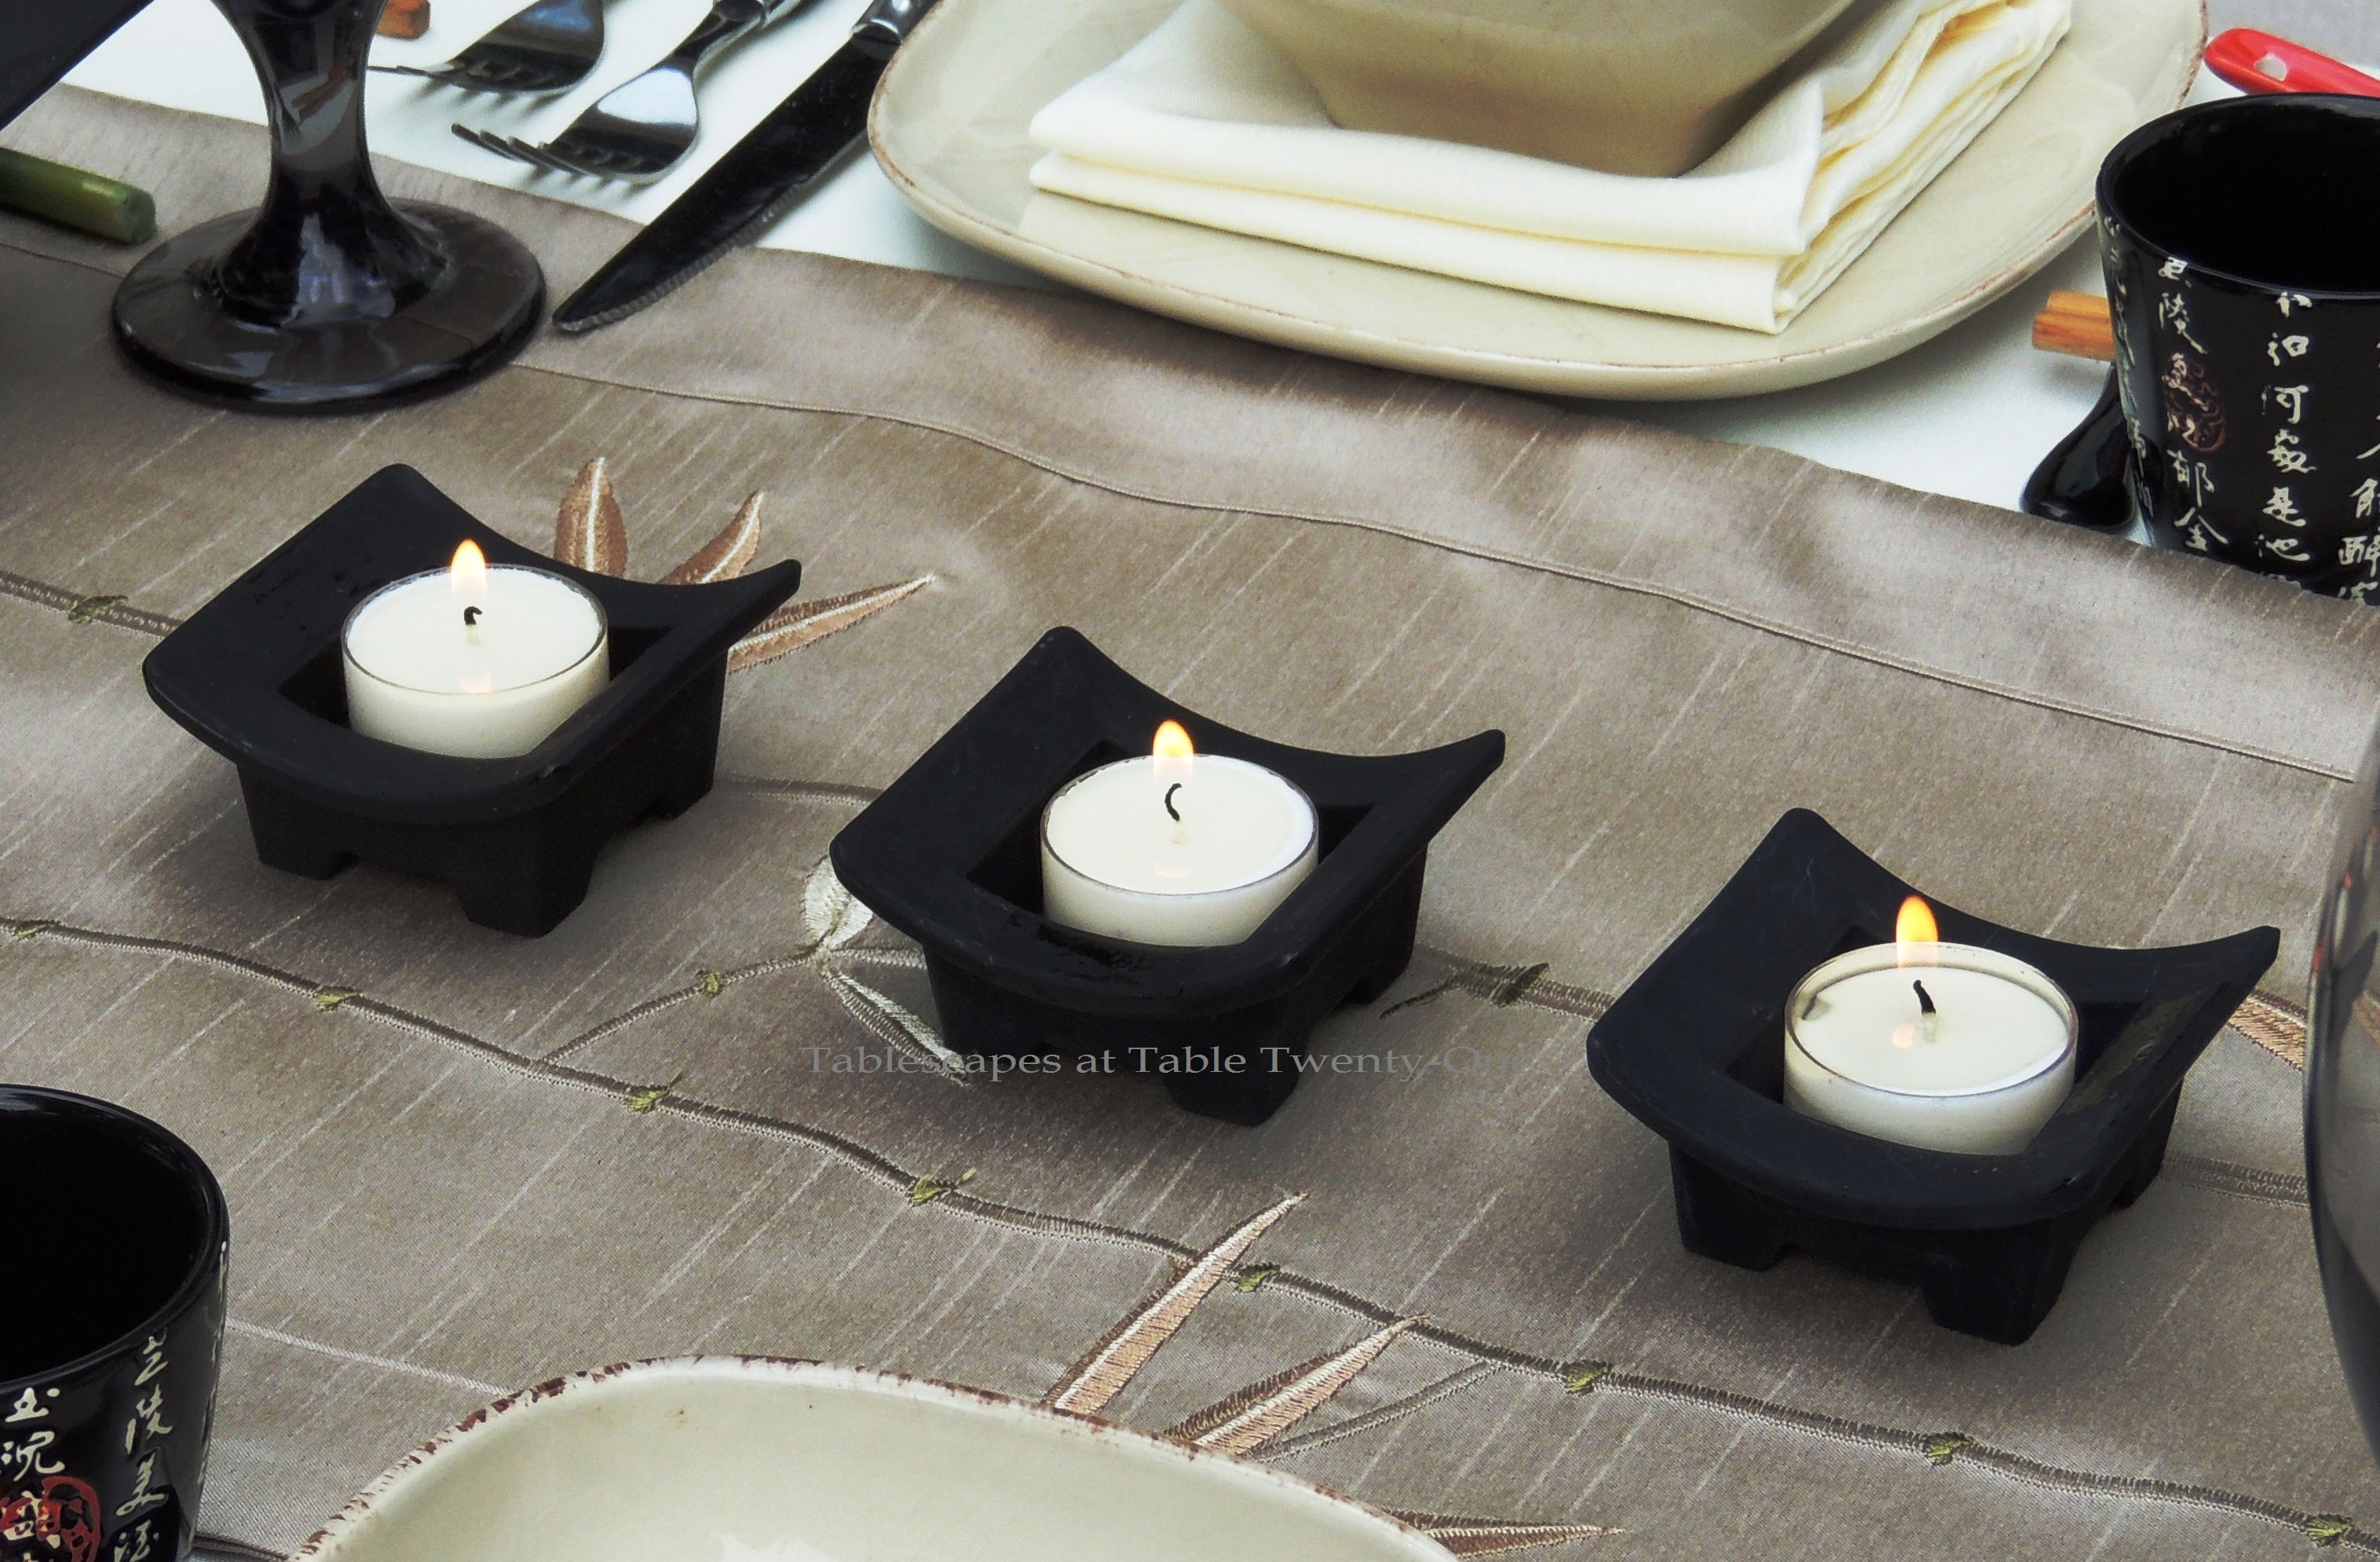 Tablescapes at Table Twenty-One, www.tabletwentyone.wordpress.com, Chinese Takeout: Black Asian-inspired votive holders